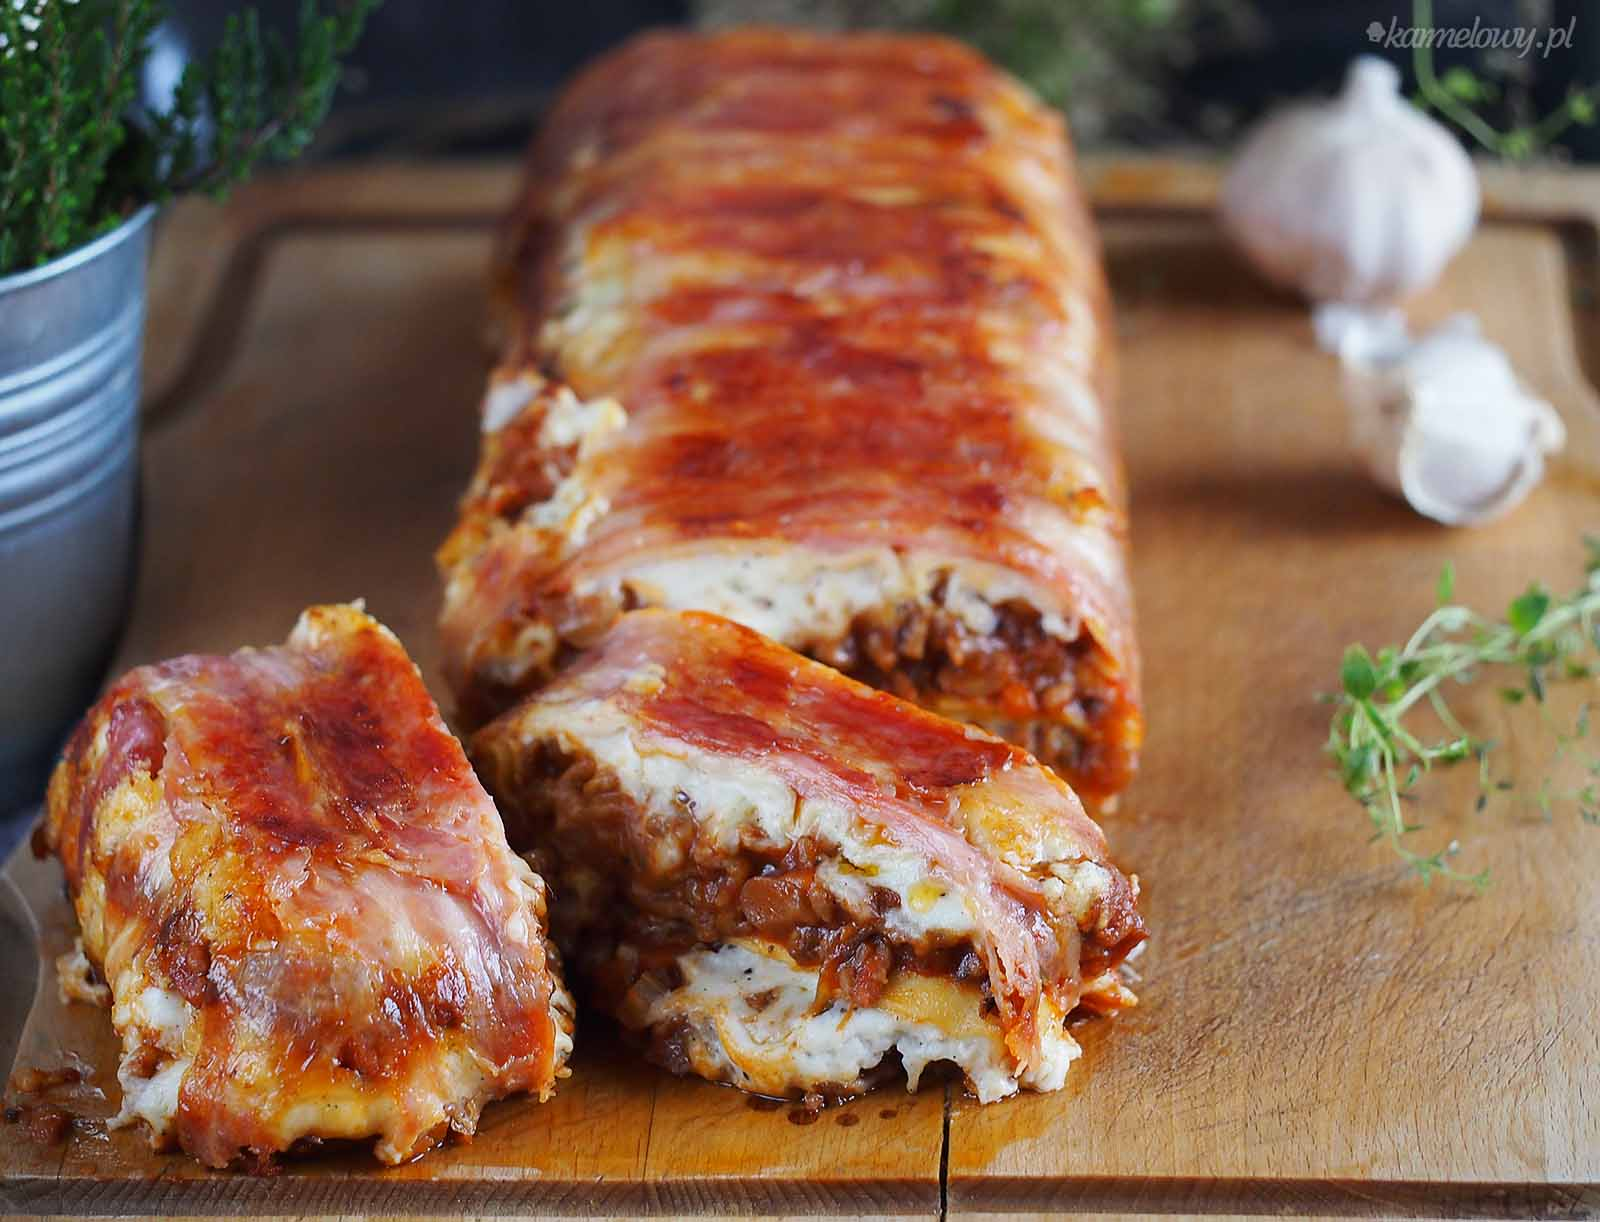 Lasagne-miesno-grzybowe-w-boczku-Bacon-wrapped-meat-and-mushroom-lasagna